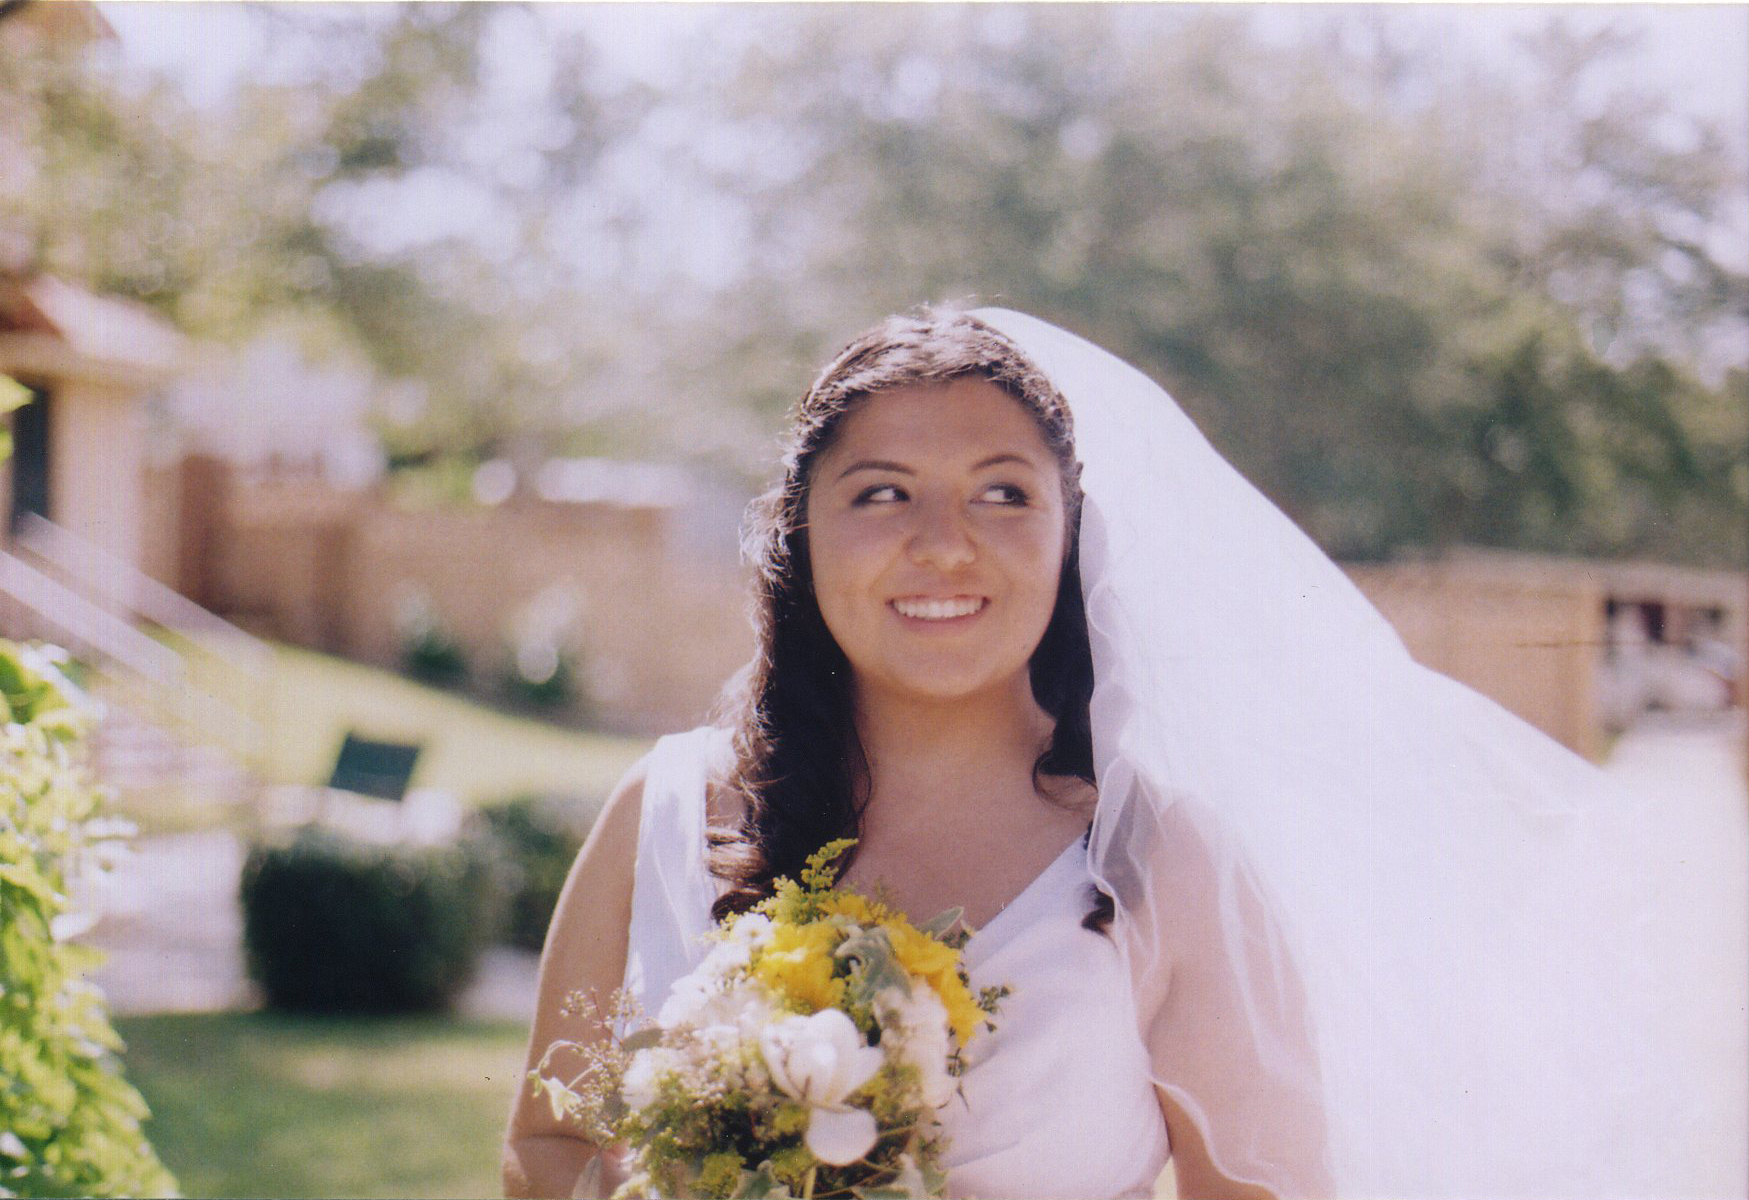 christy_pena_moreno_wedding02.jpg